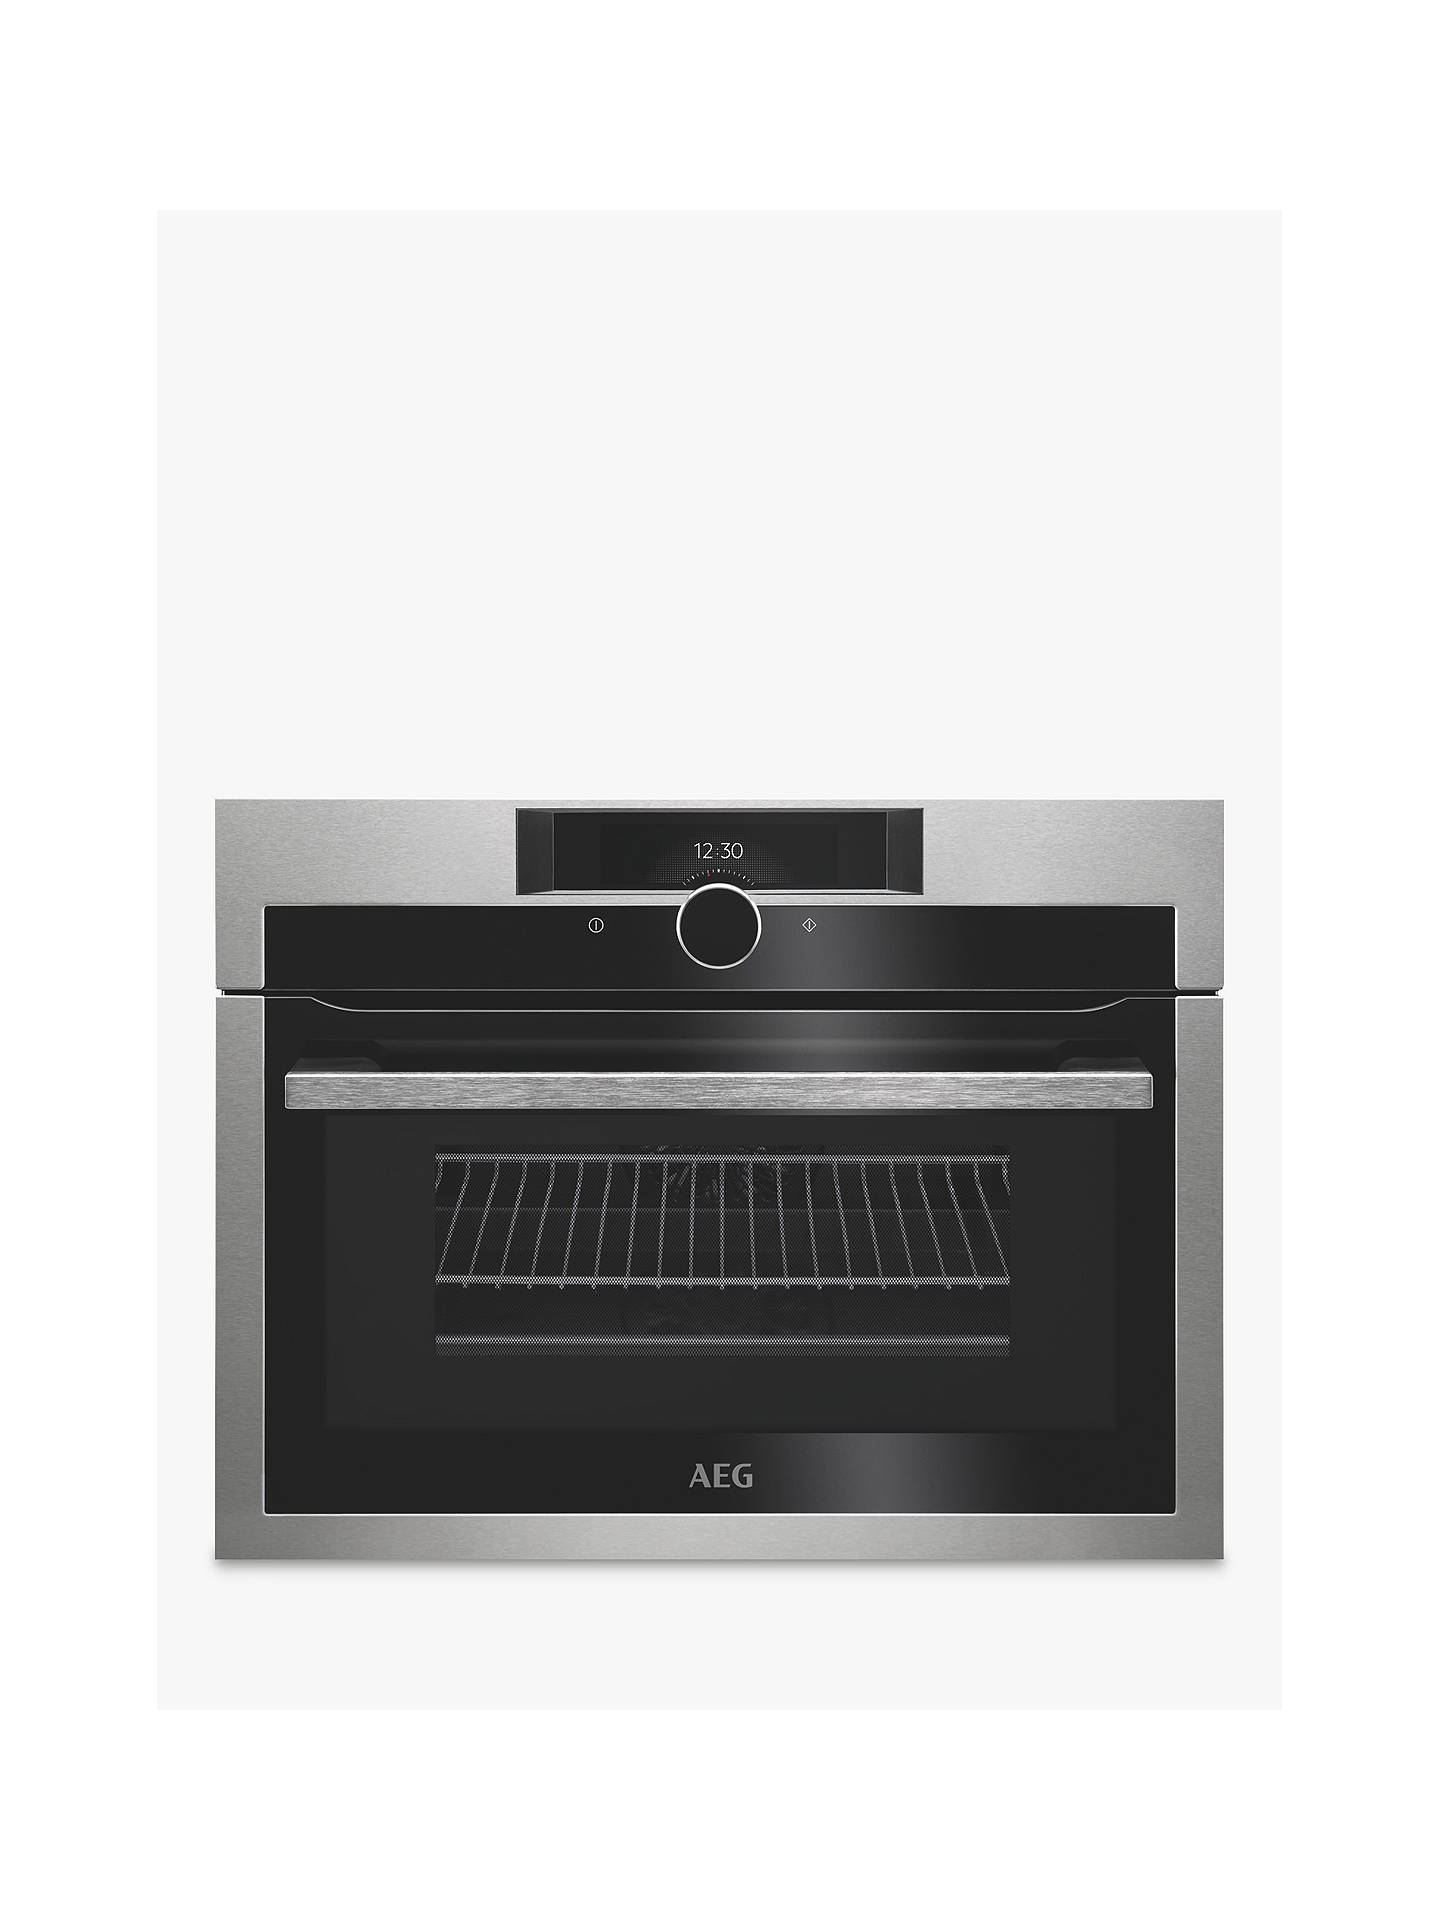 BuyAEG KME861000M CombiQuick Compact Oven with Microwave, Stainless Steel Online at johnlewis.com